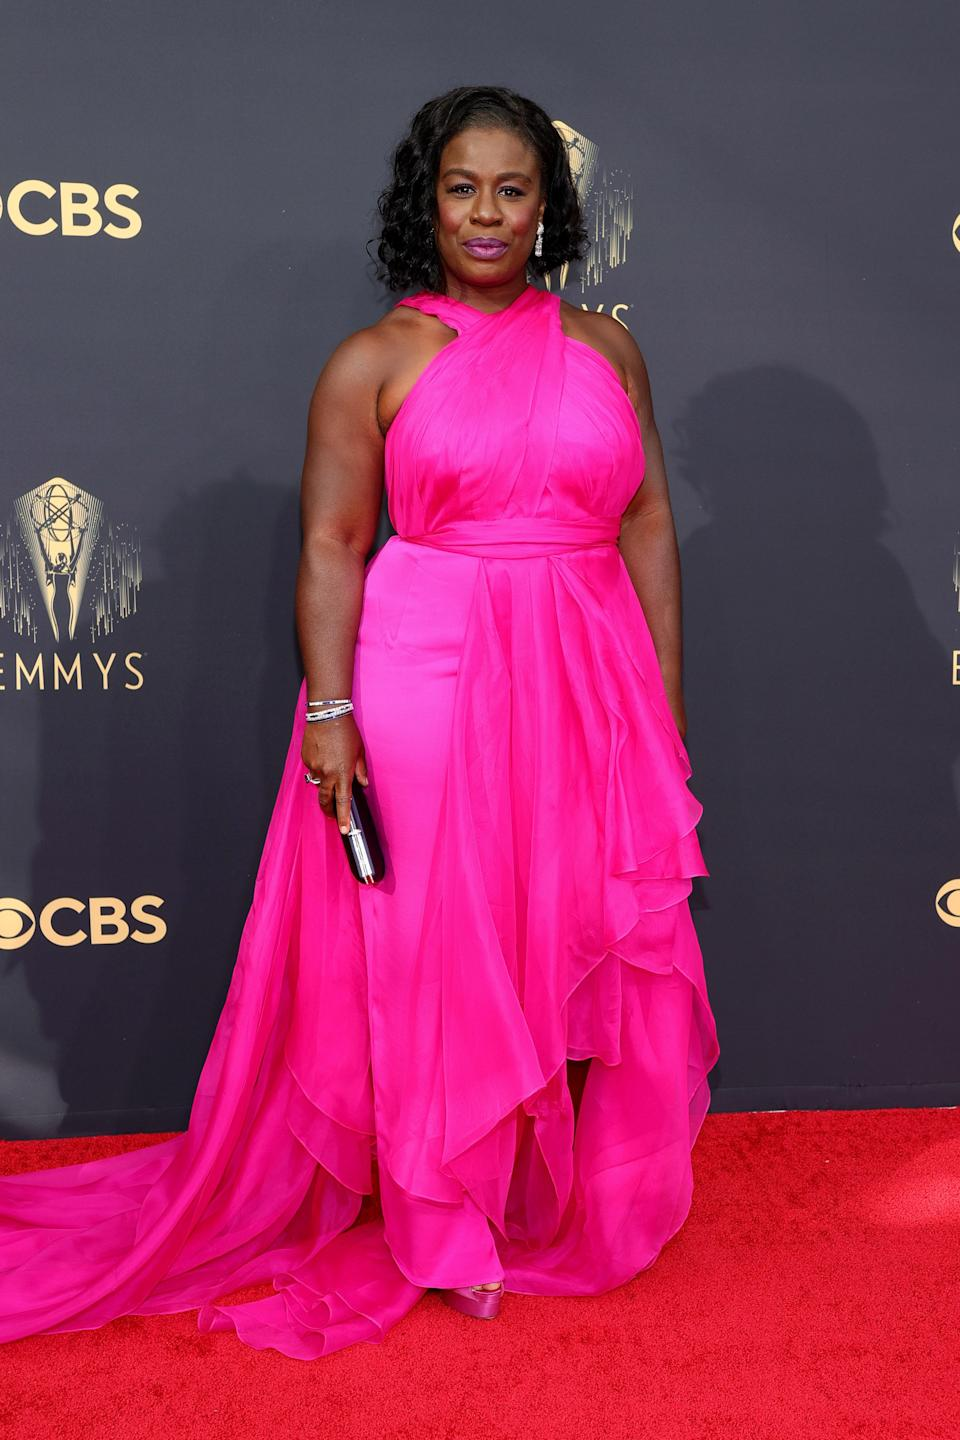 Another vote for hot, hot pink! We're obsessed with Uzo's eye-popping pink gown.